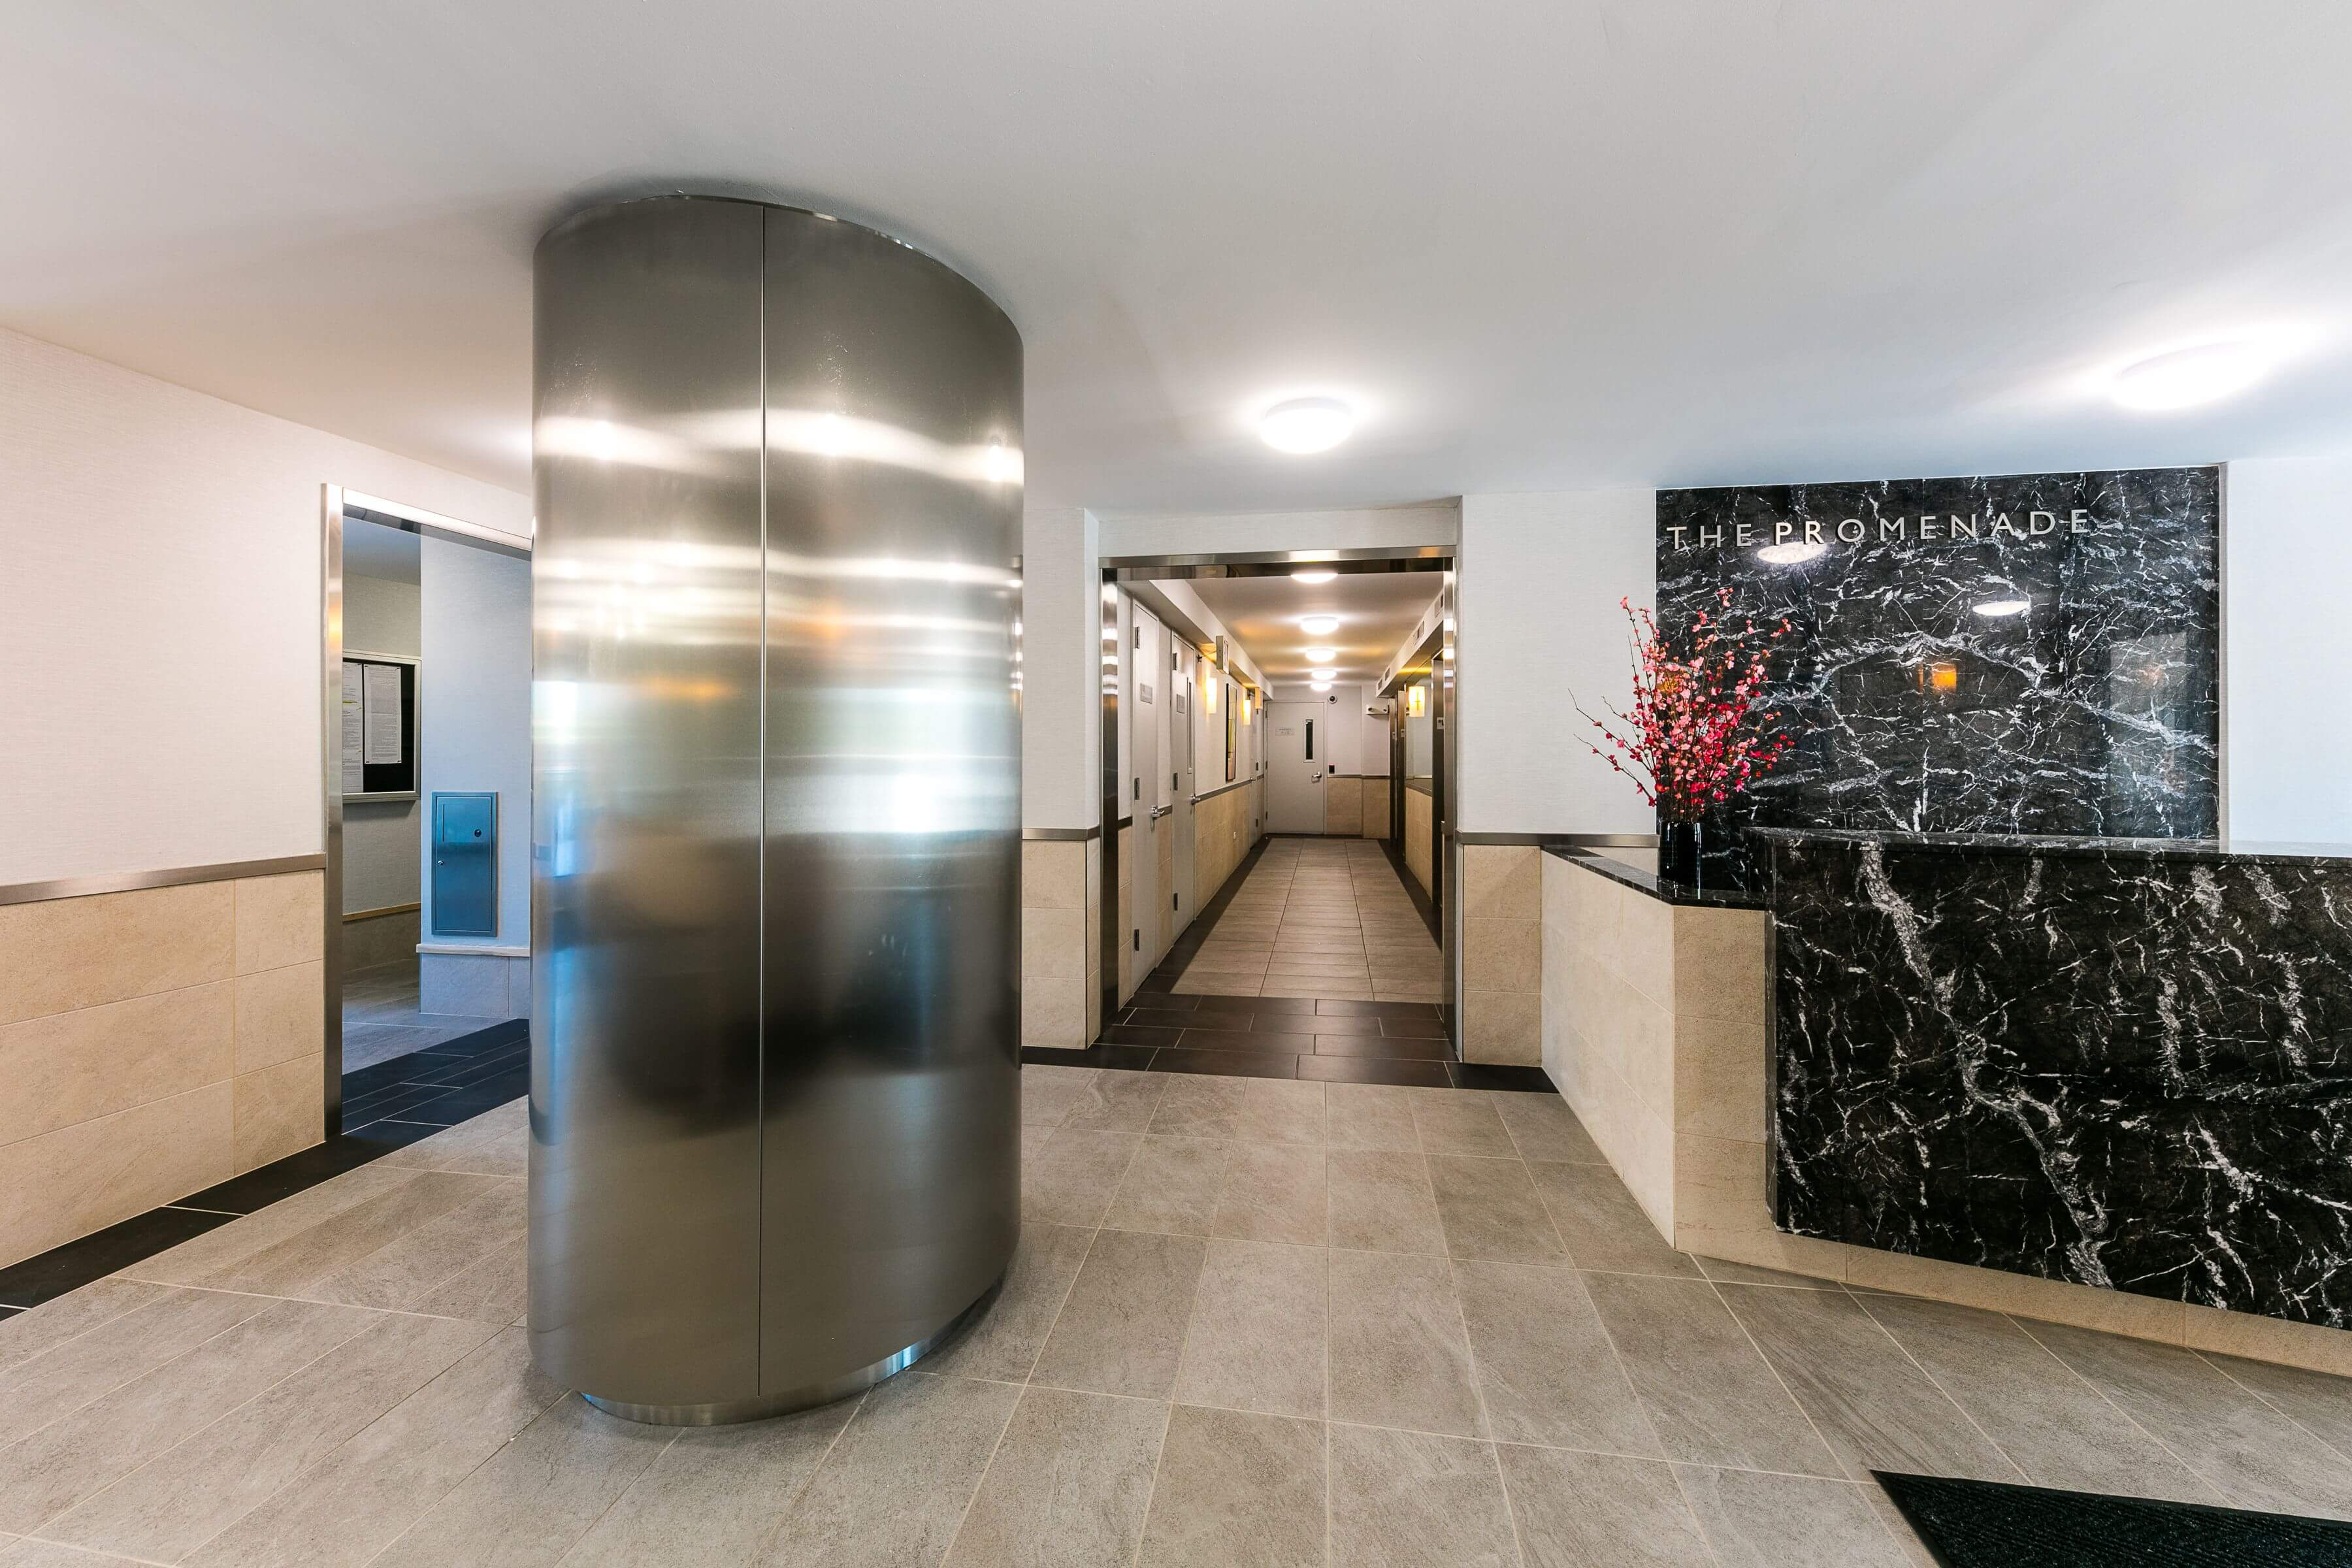 The Lobby at The Promenade, 150 West 225th street, has modern Finishes, including Marble & stainless steel.